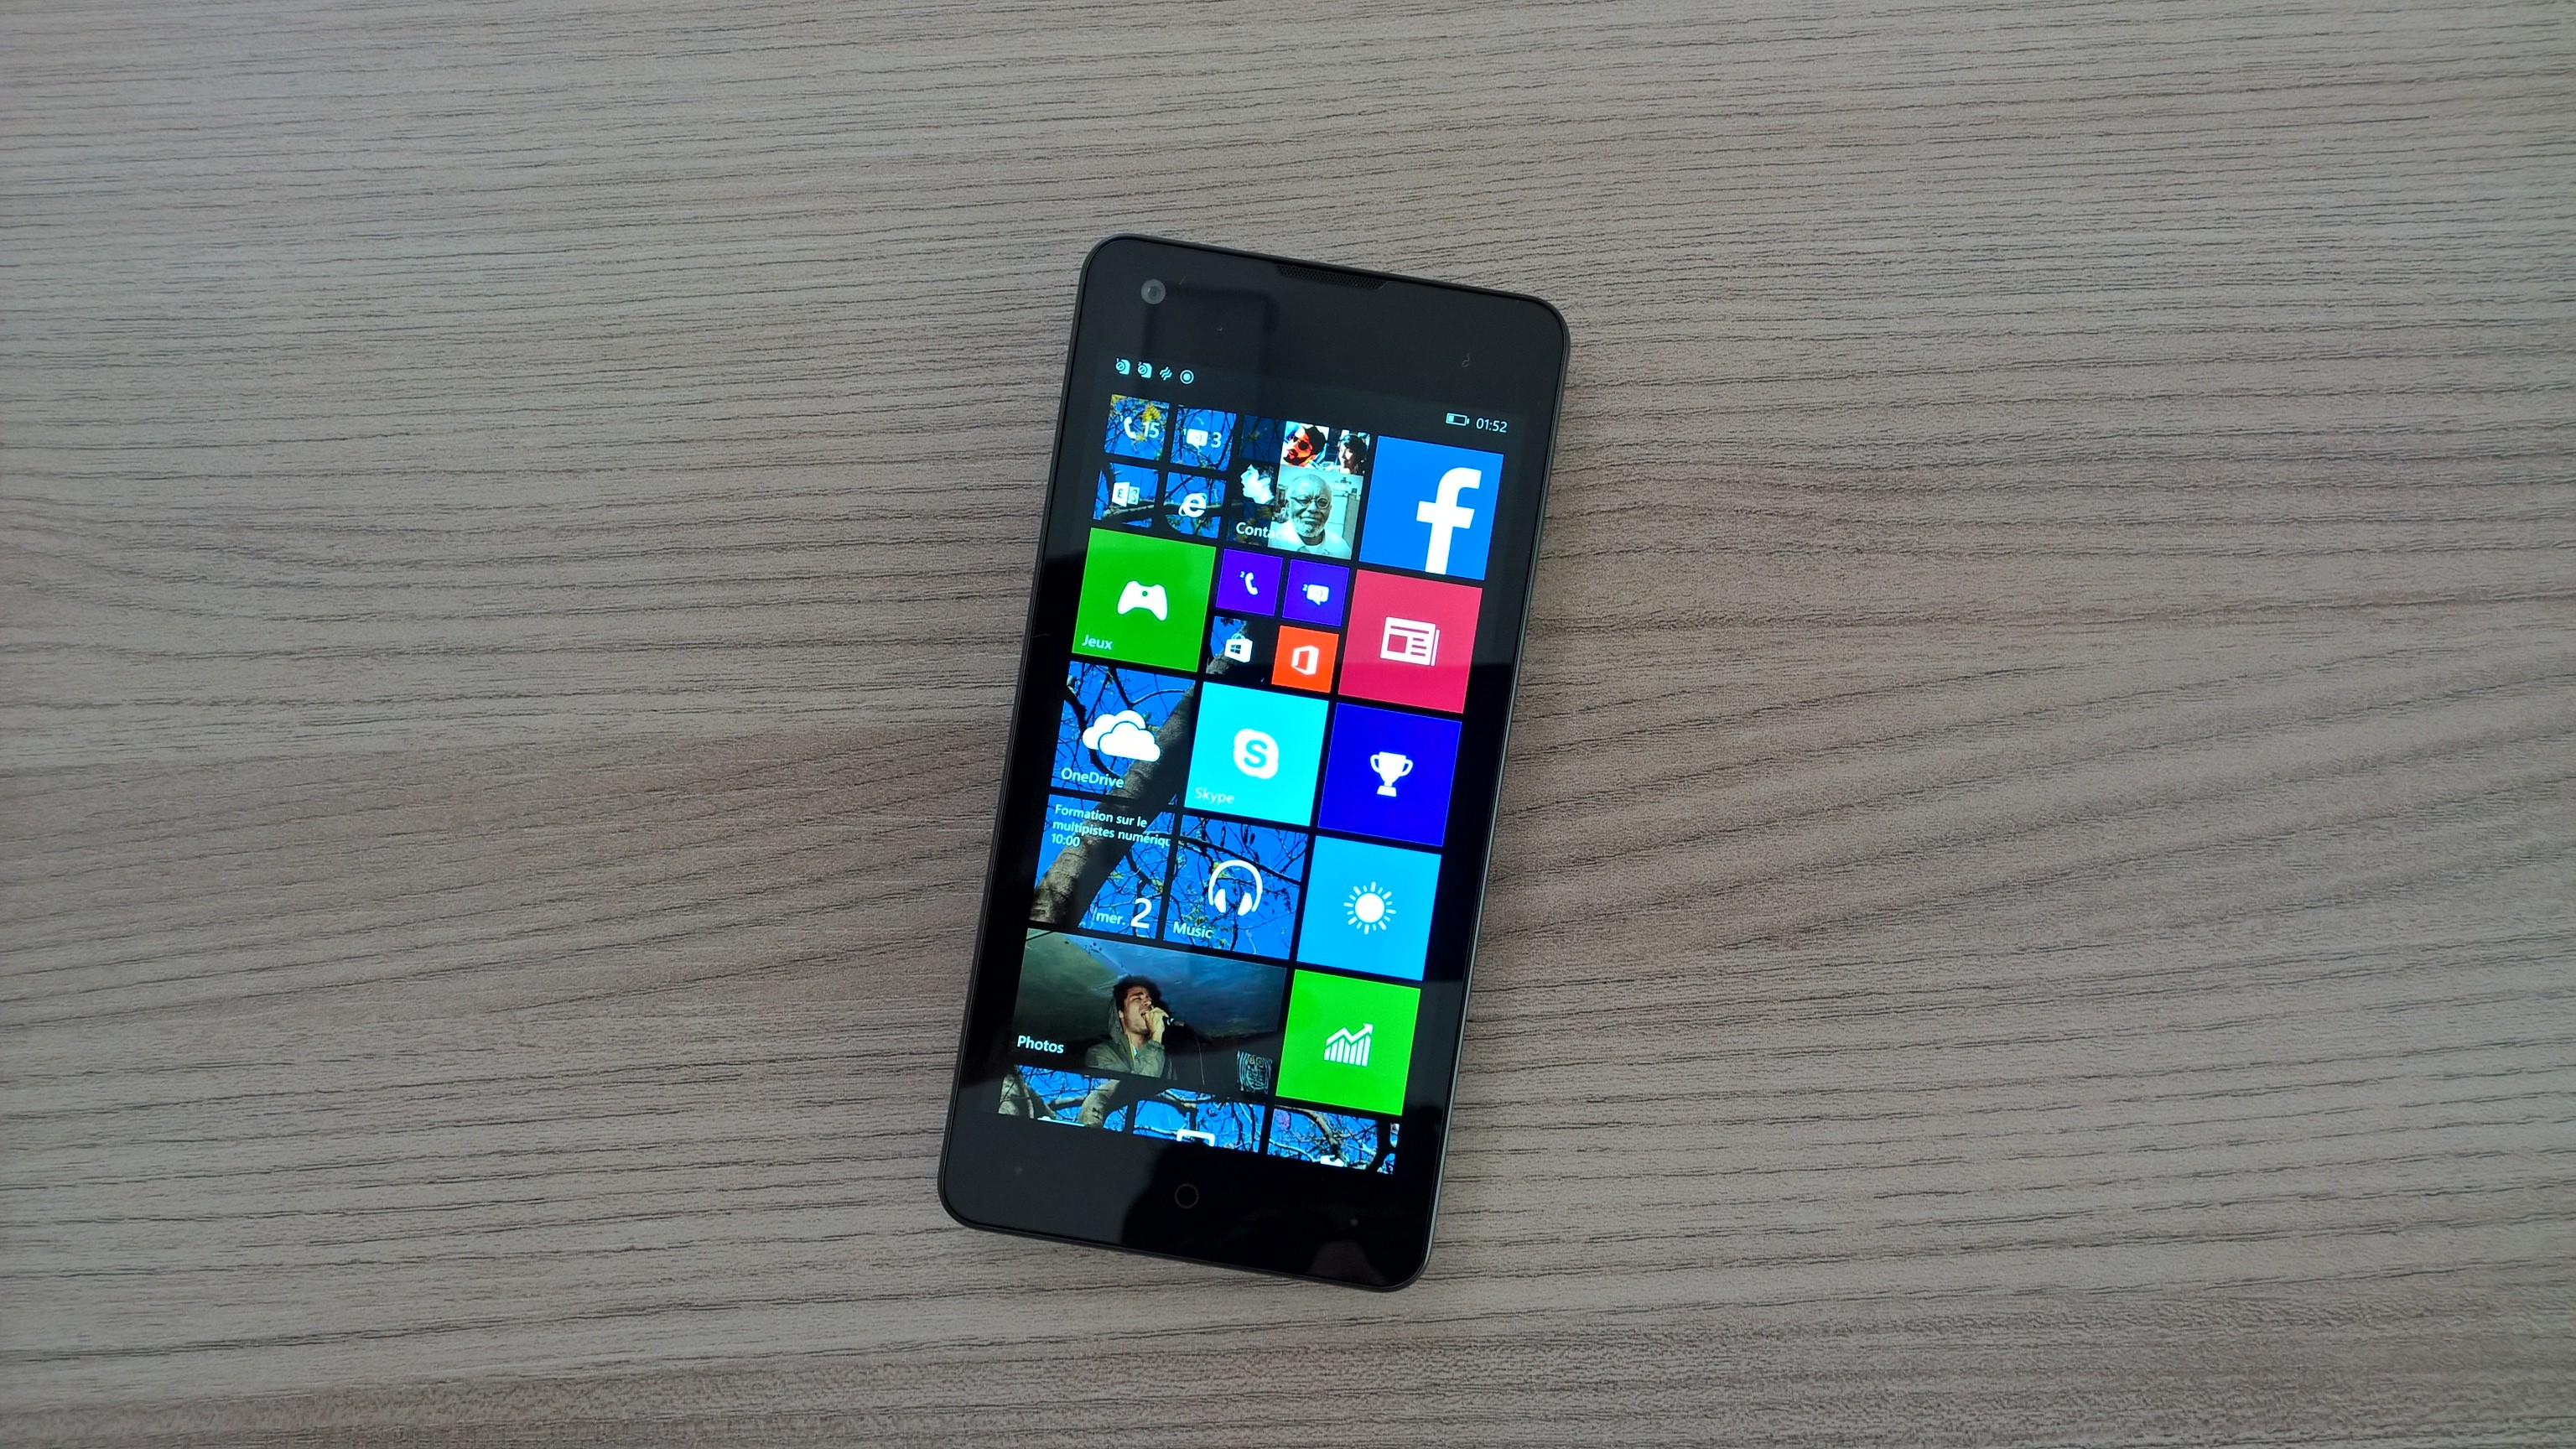 be0f5996b2f36 Yezz Confirms New Windows 10 Smartphone for Autumn